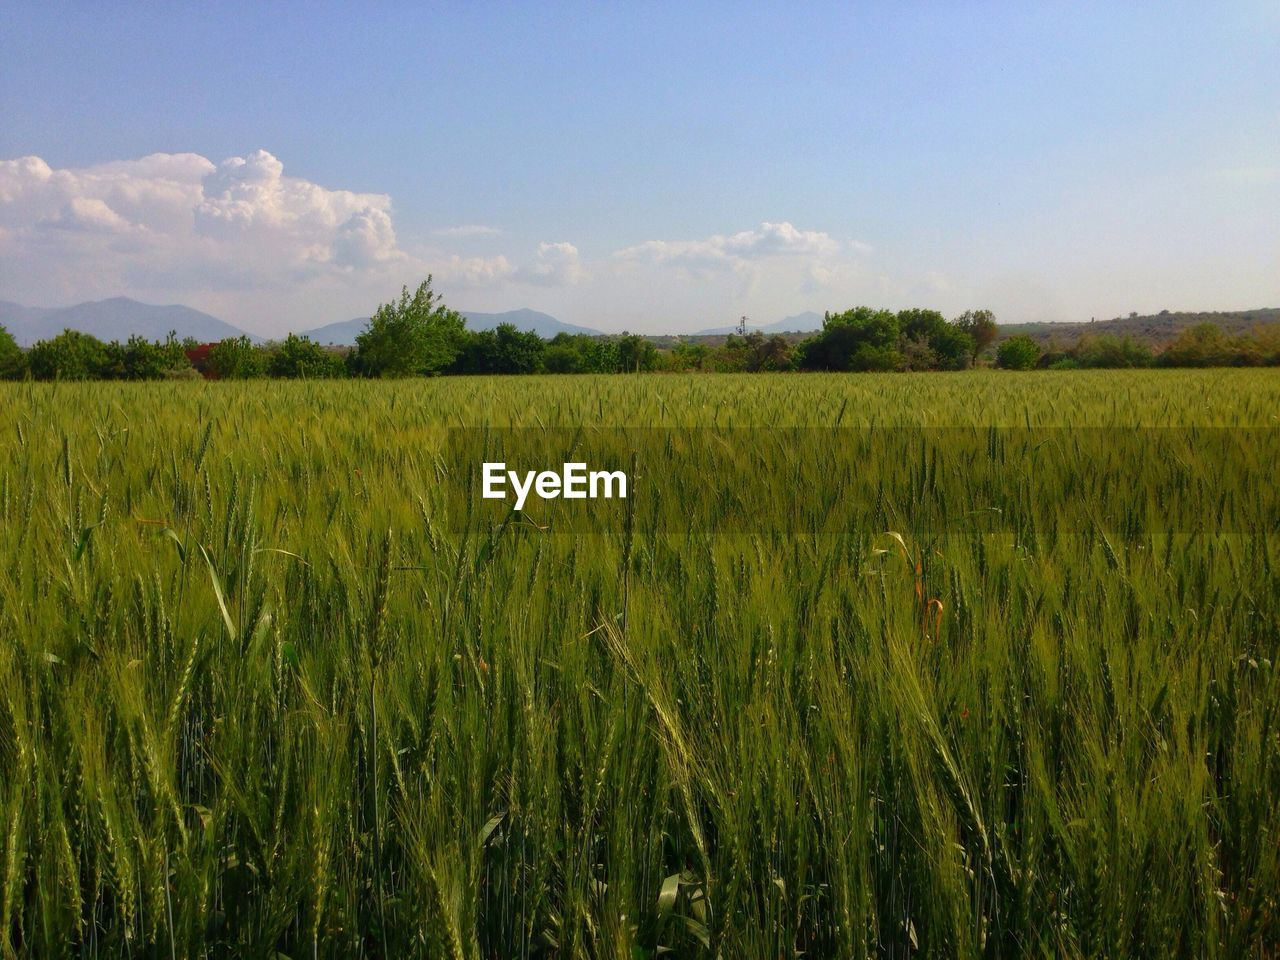 agriculture, growth, field, nature, tranquility, landscape, farm, beauty in nature, green color, crop, green, tranquil scene, cereal plant, sky, no people, outdoors, scenics, plant, rural scene, day, tree, wheat, grass